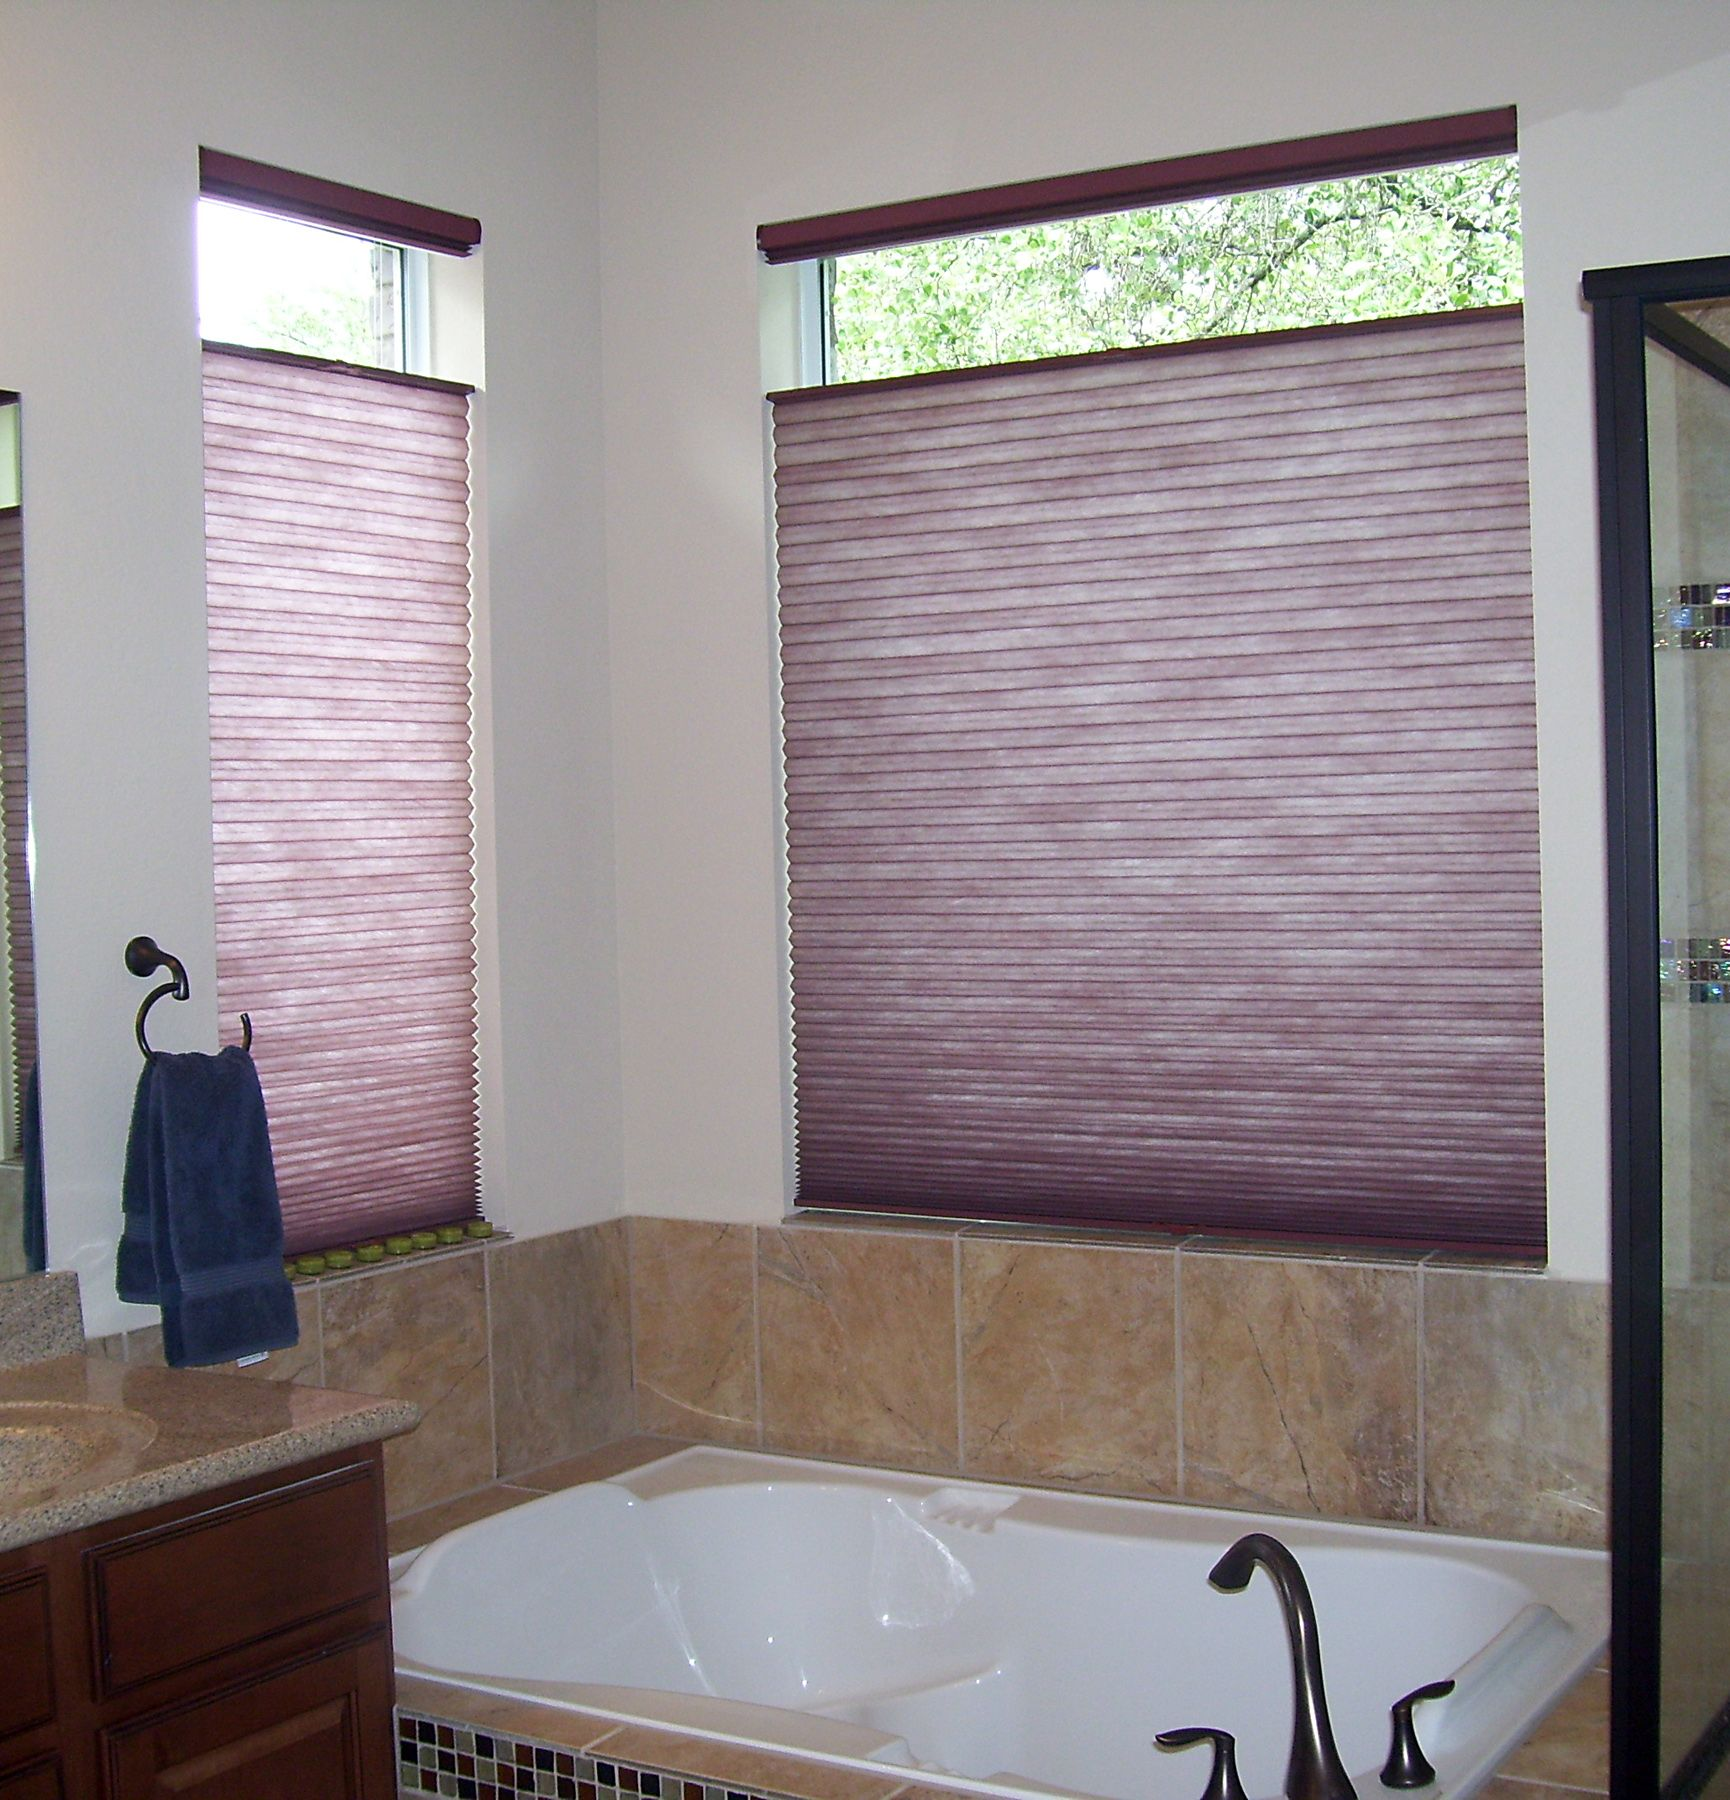 Window blinds bathroom - After Photo Of Bathroom With Honeycomb Shades Great For Privacy Light Control And Energy